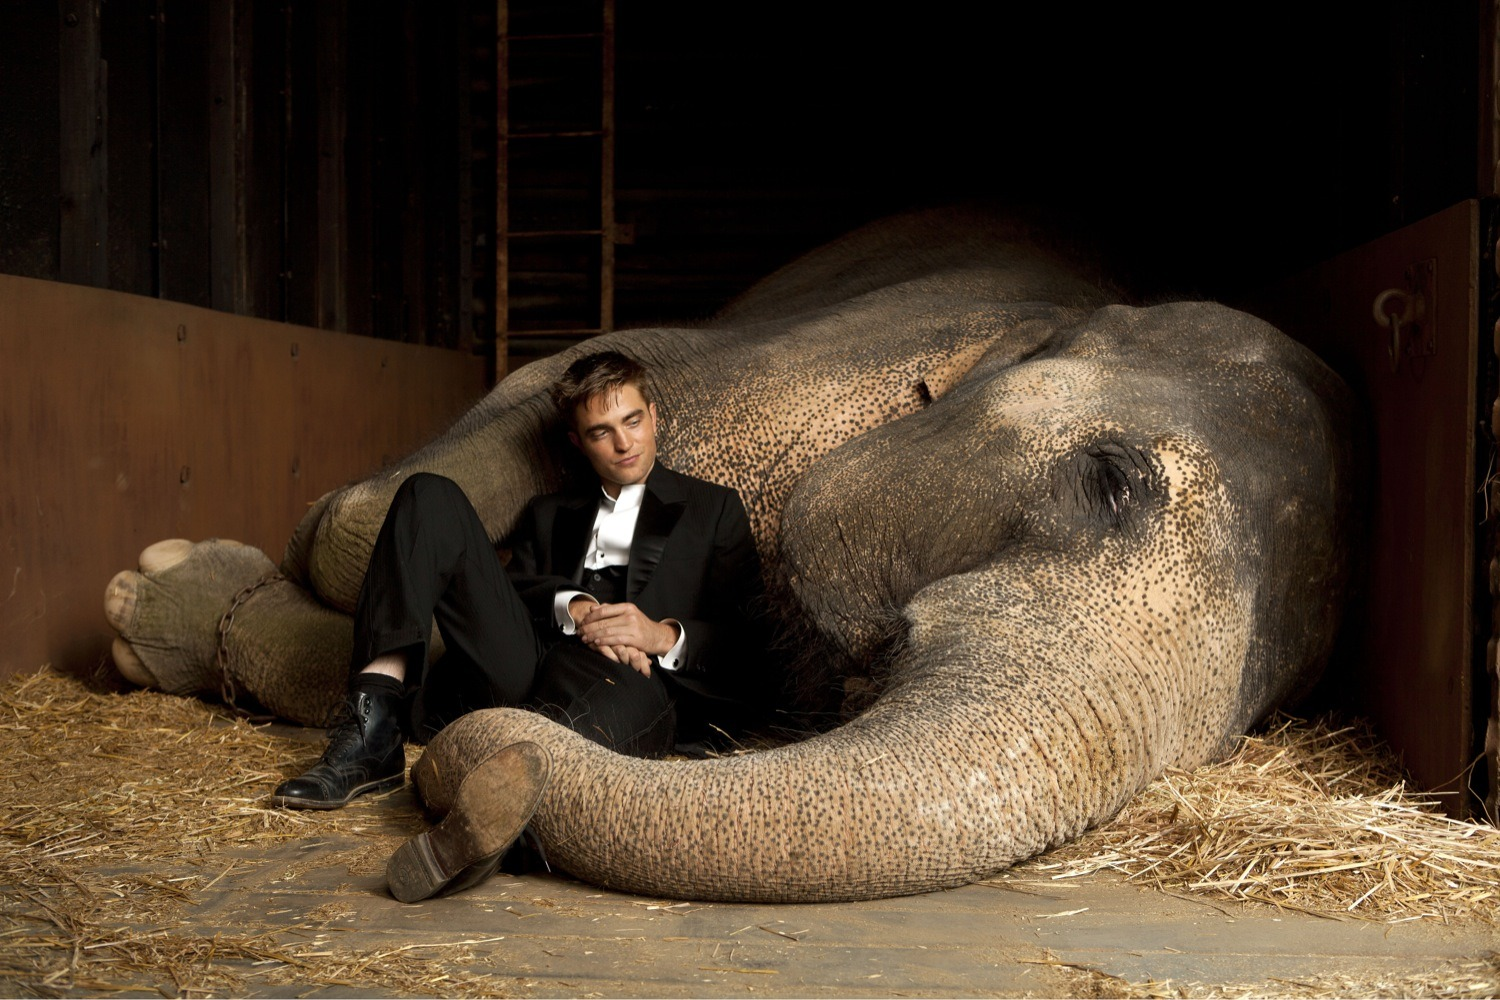 Rob with elephant